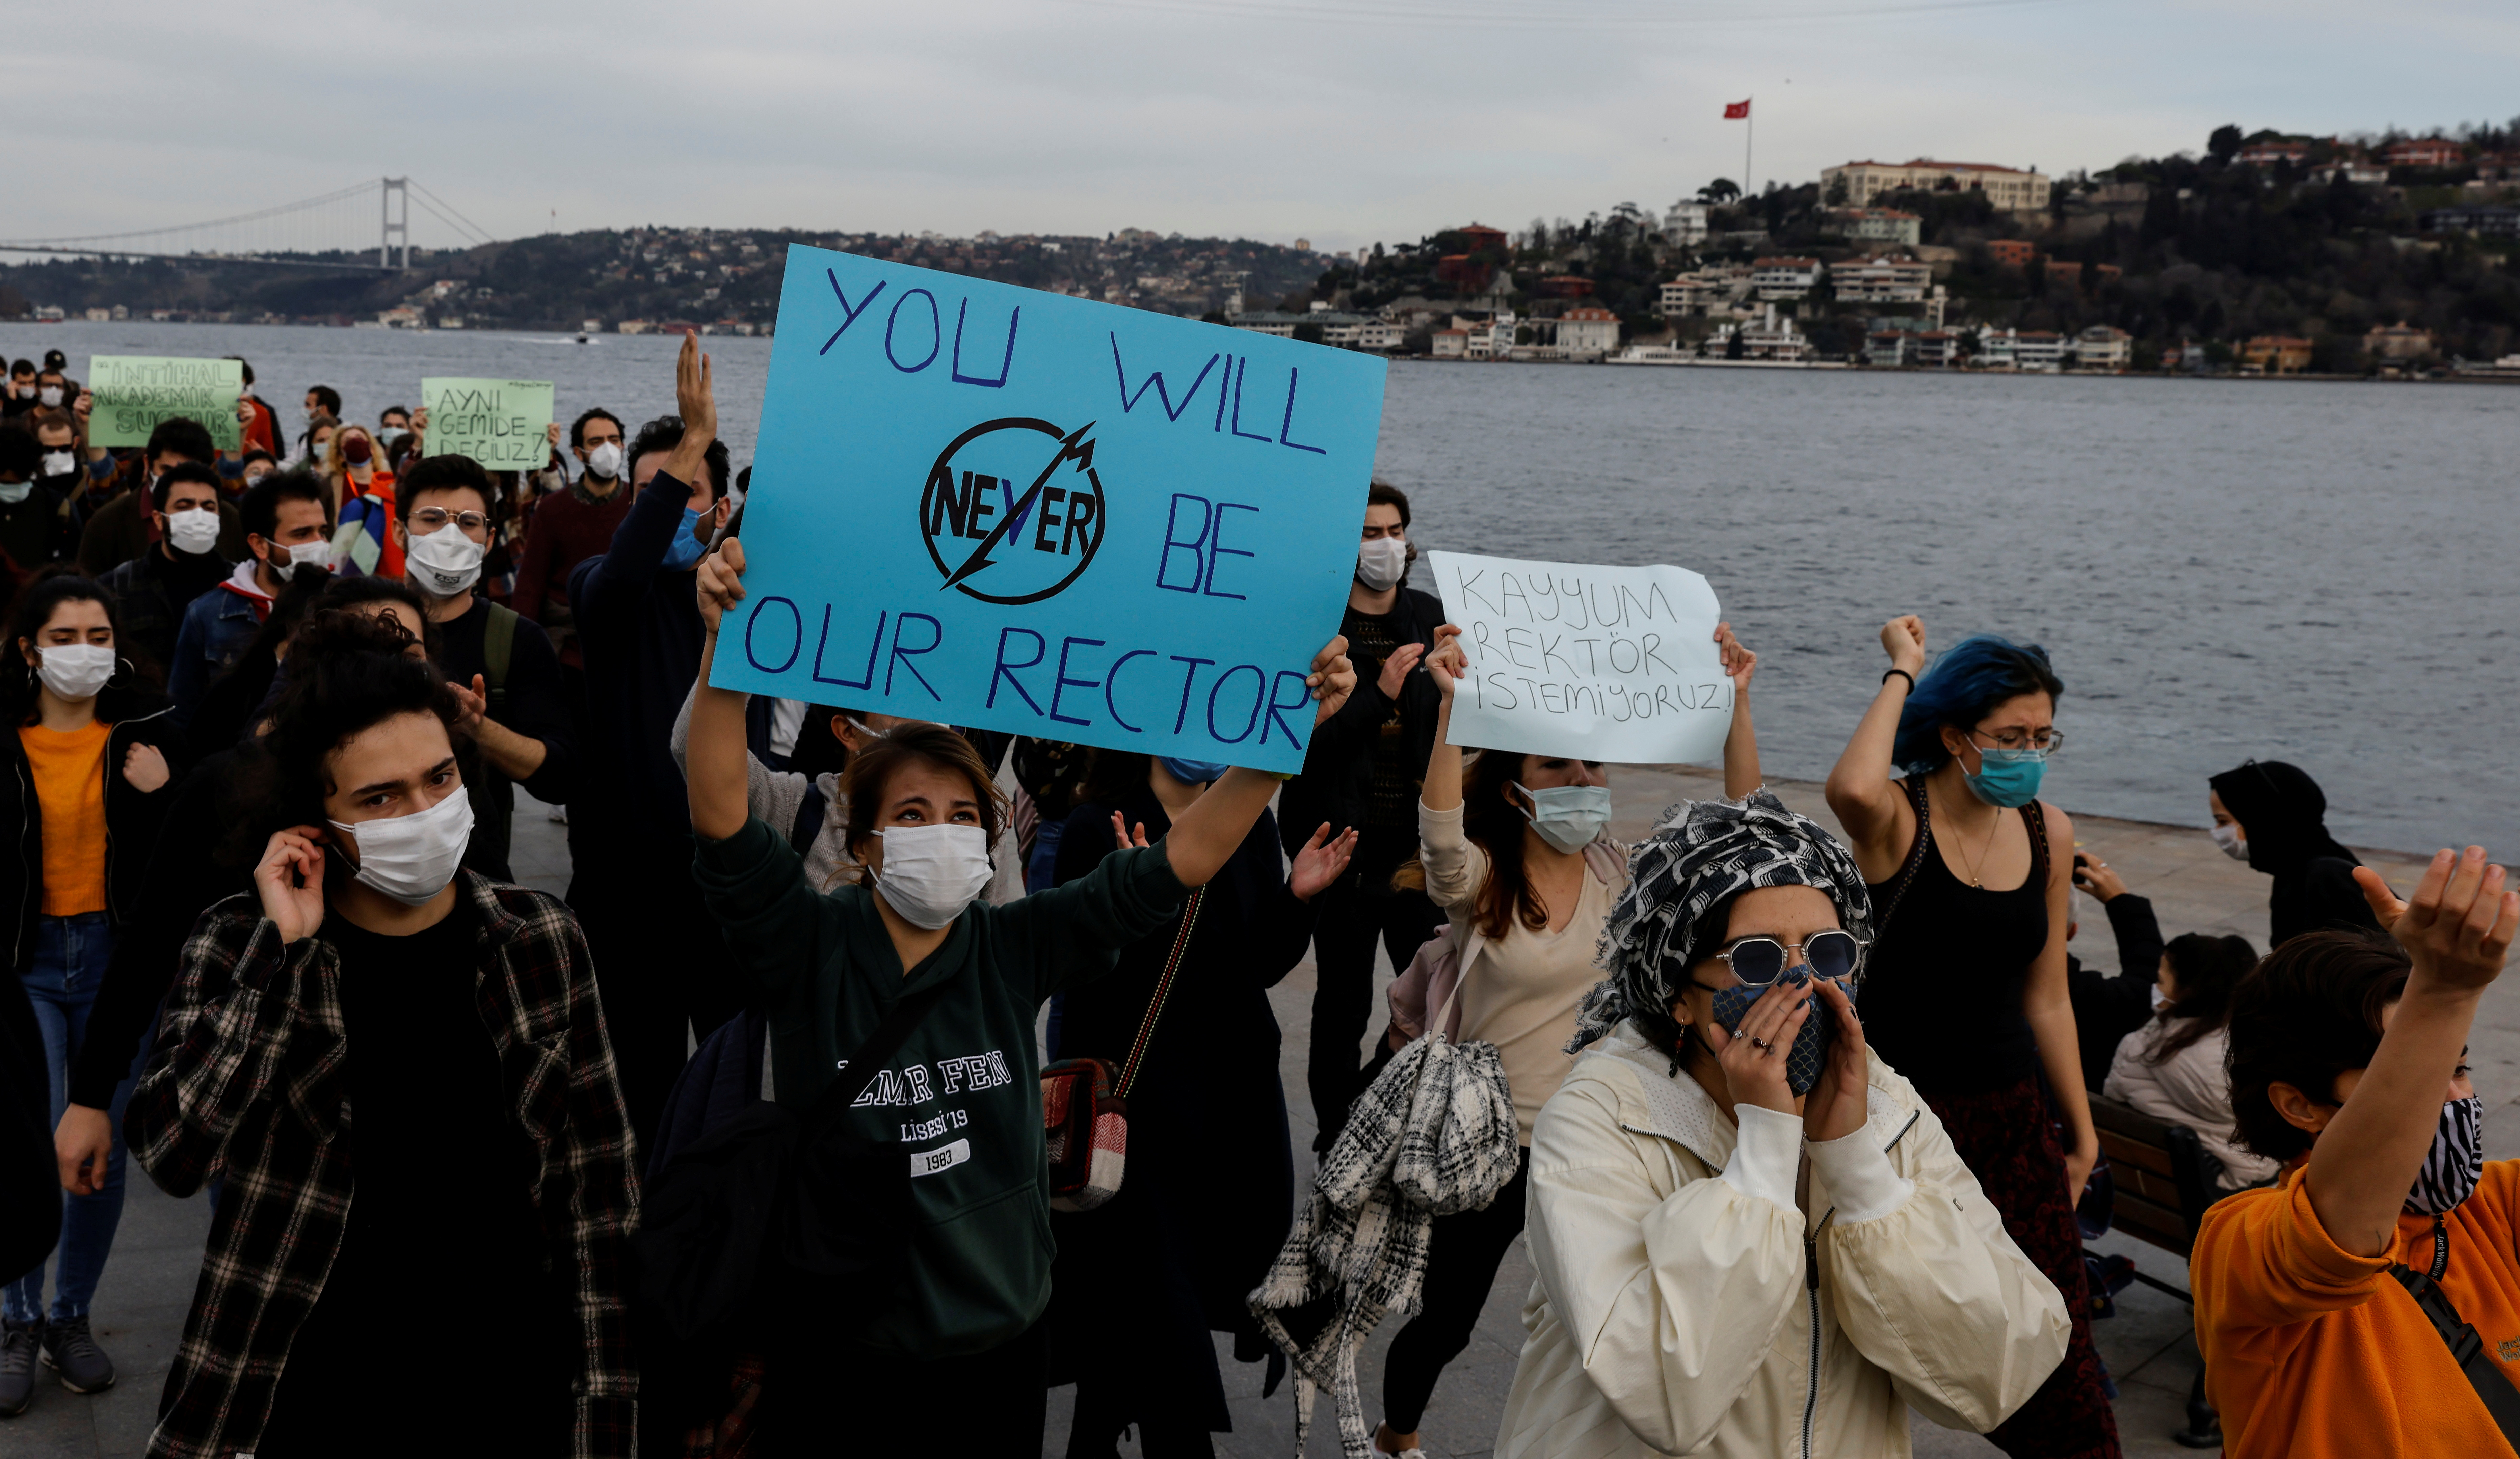 Students of Bogazici University protest against President Tayyip Erdogan's appointment of a new rector, in Istanbul, Turkey January 6, 2021. REUTERS/Umit Bektas